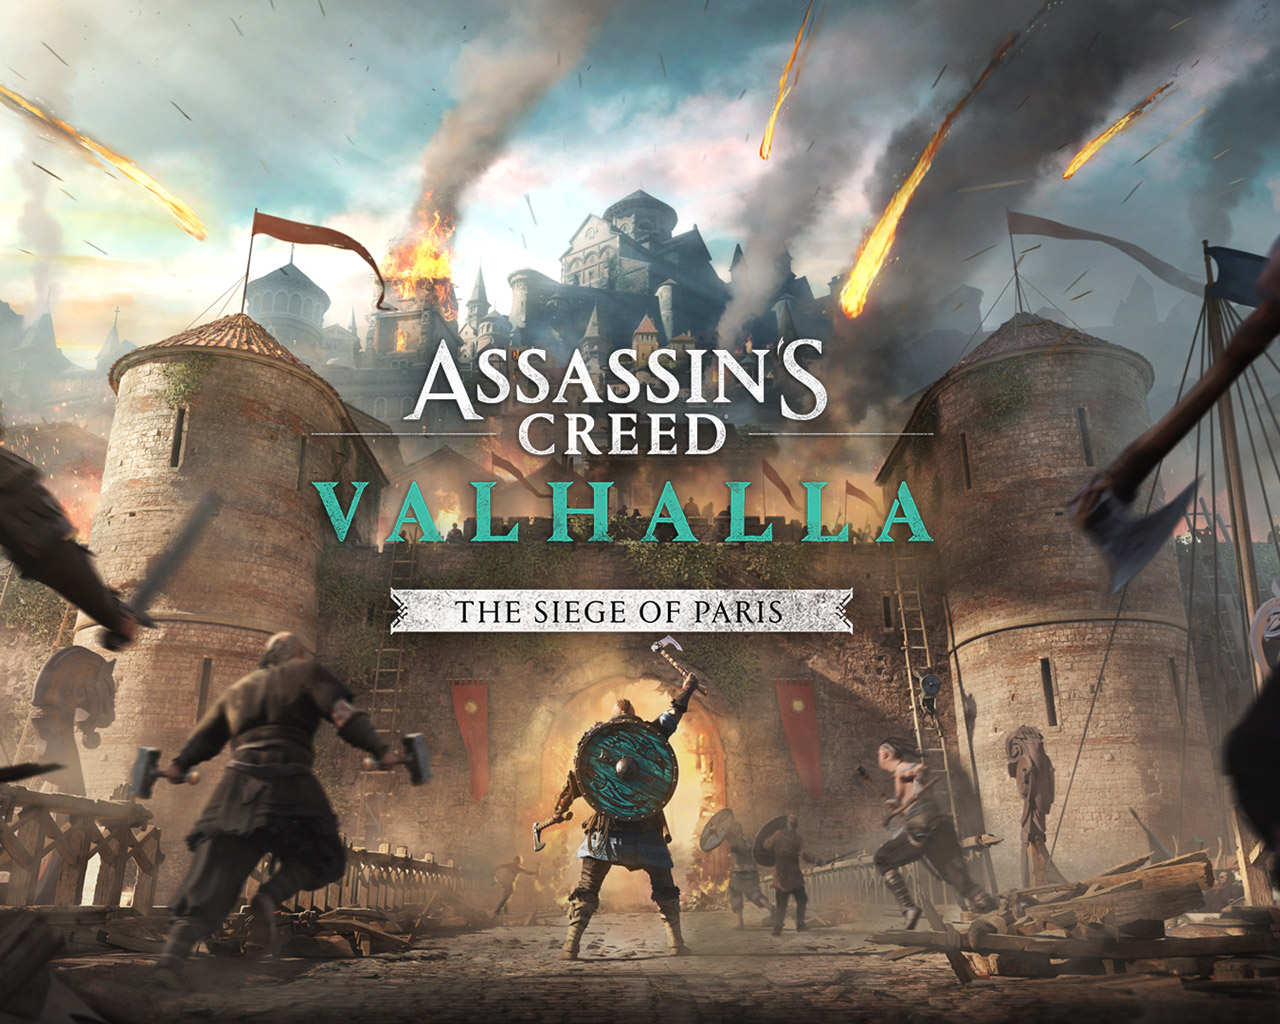 Free Assassin's Creed Valhalla Wallpaper in 1280x1024